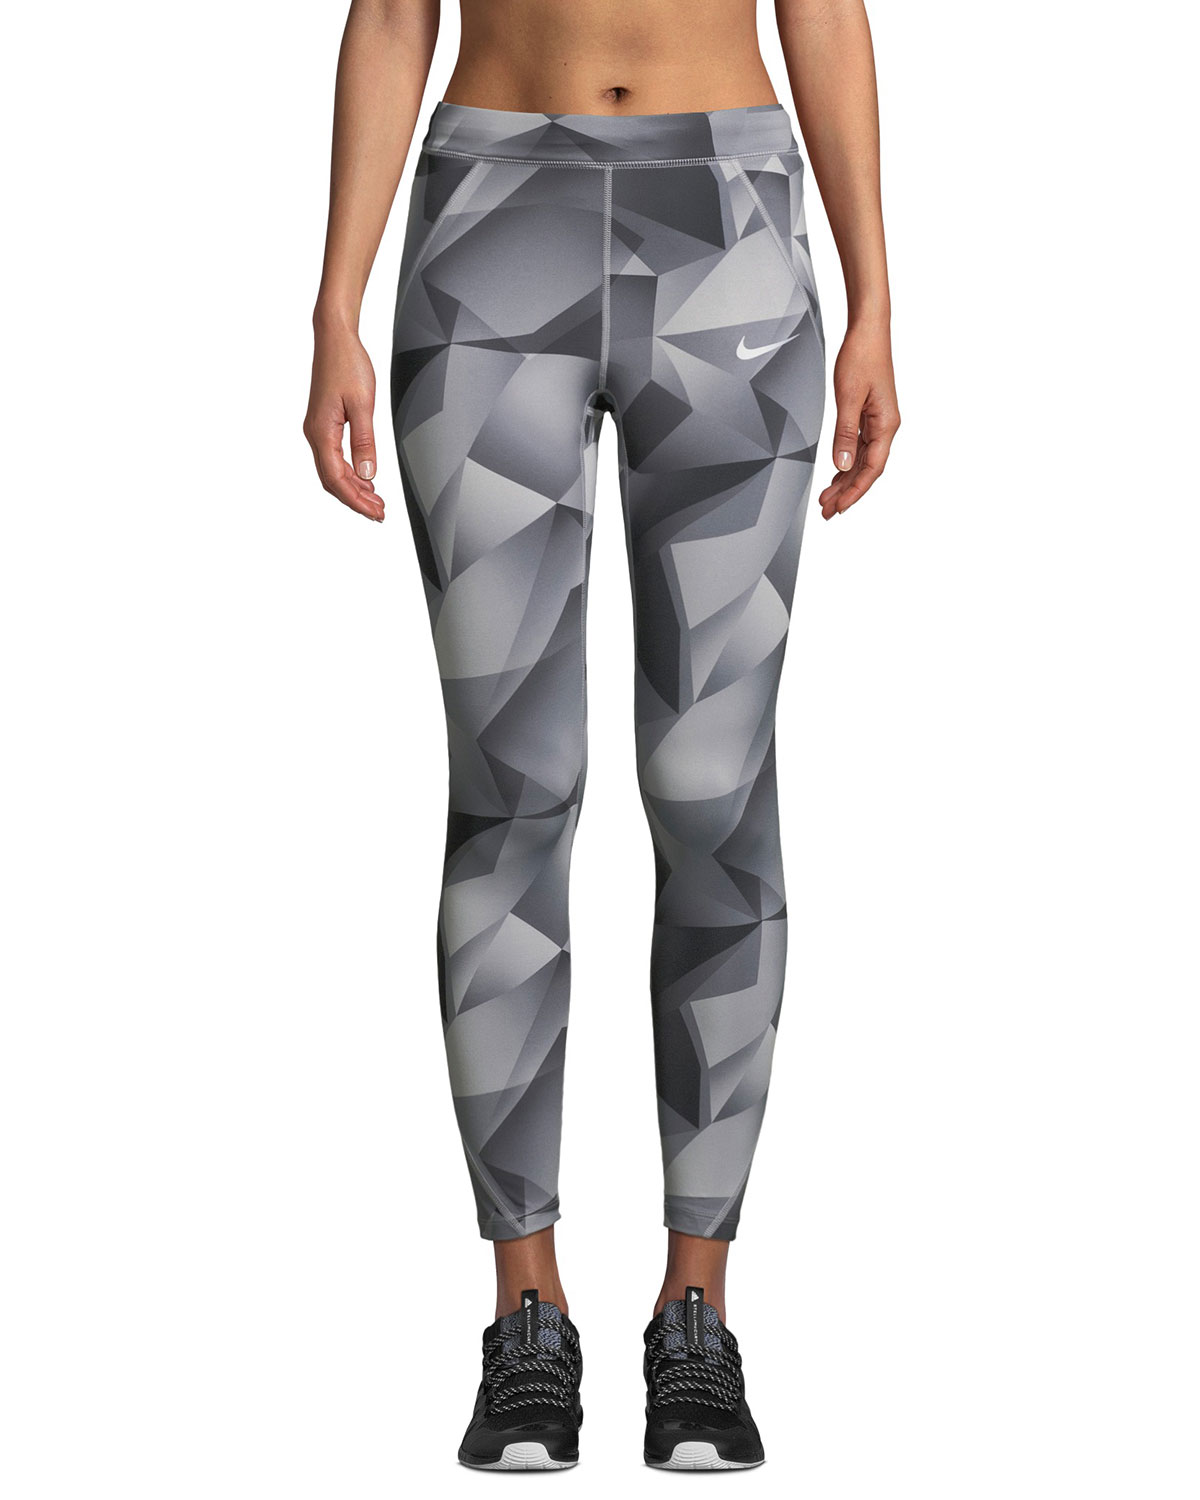 f0d08d76a33c5 Nike Speed Printed 7 8 Running Tights